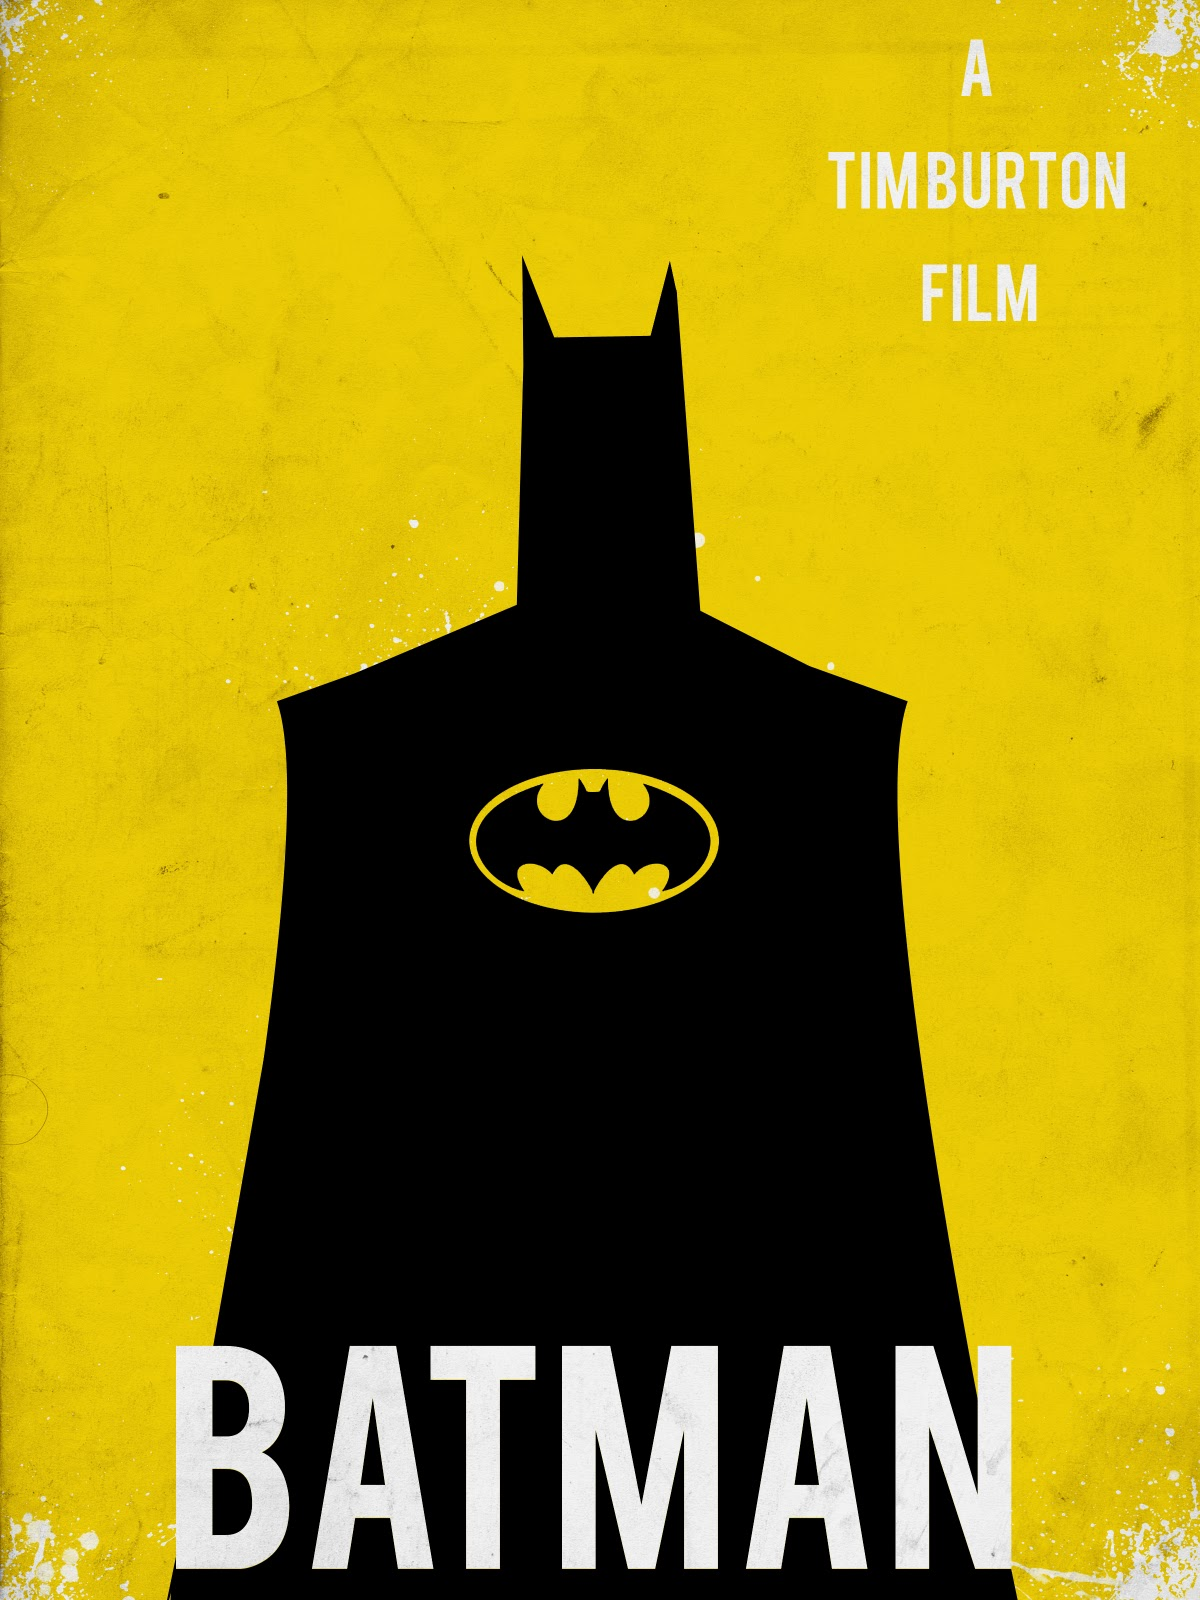 RCDesign + Illustration: Minimalist Movie Posters.